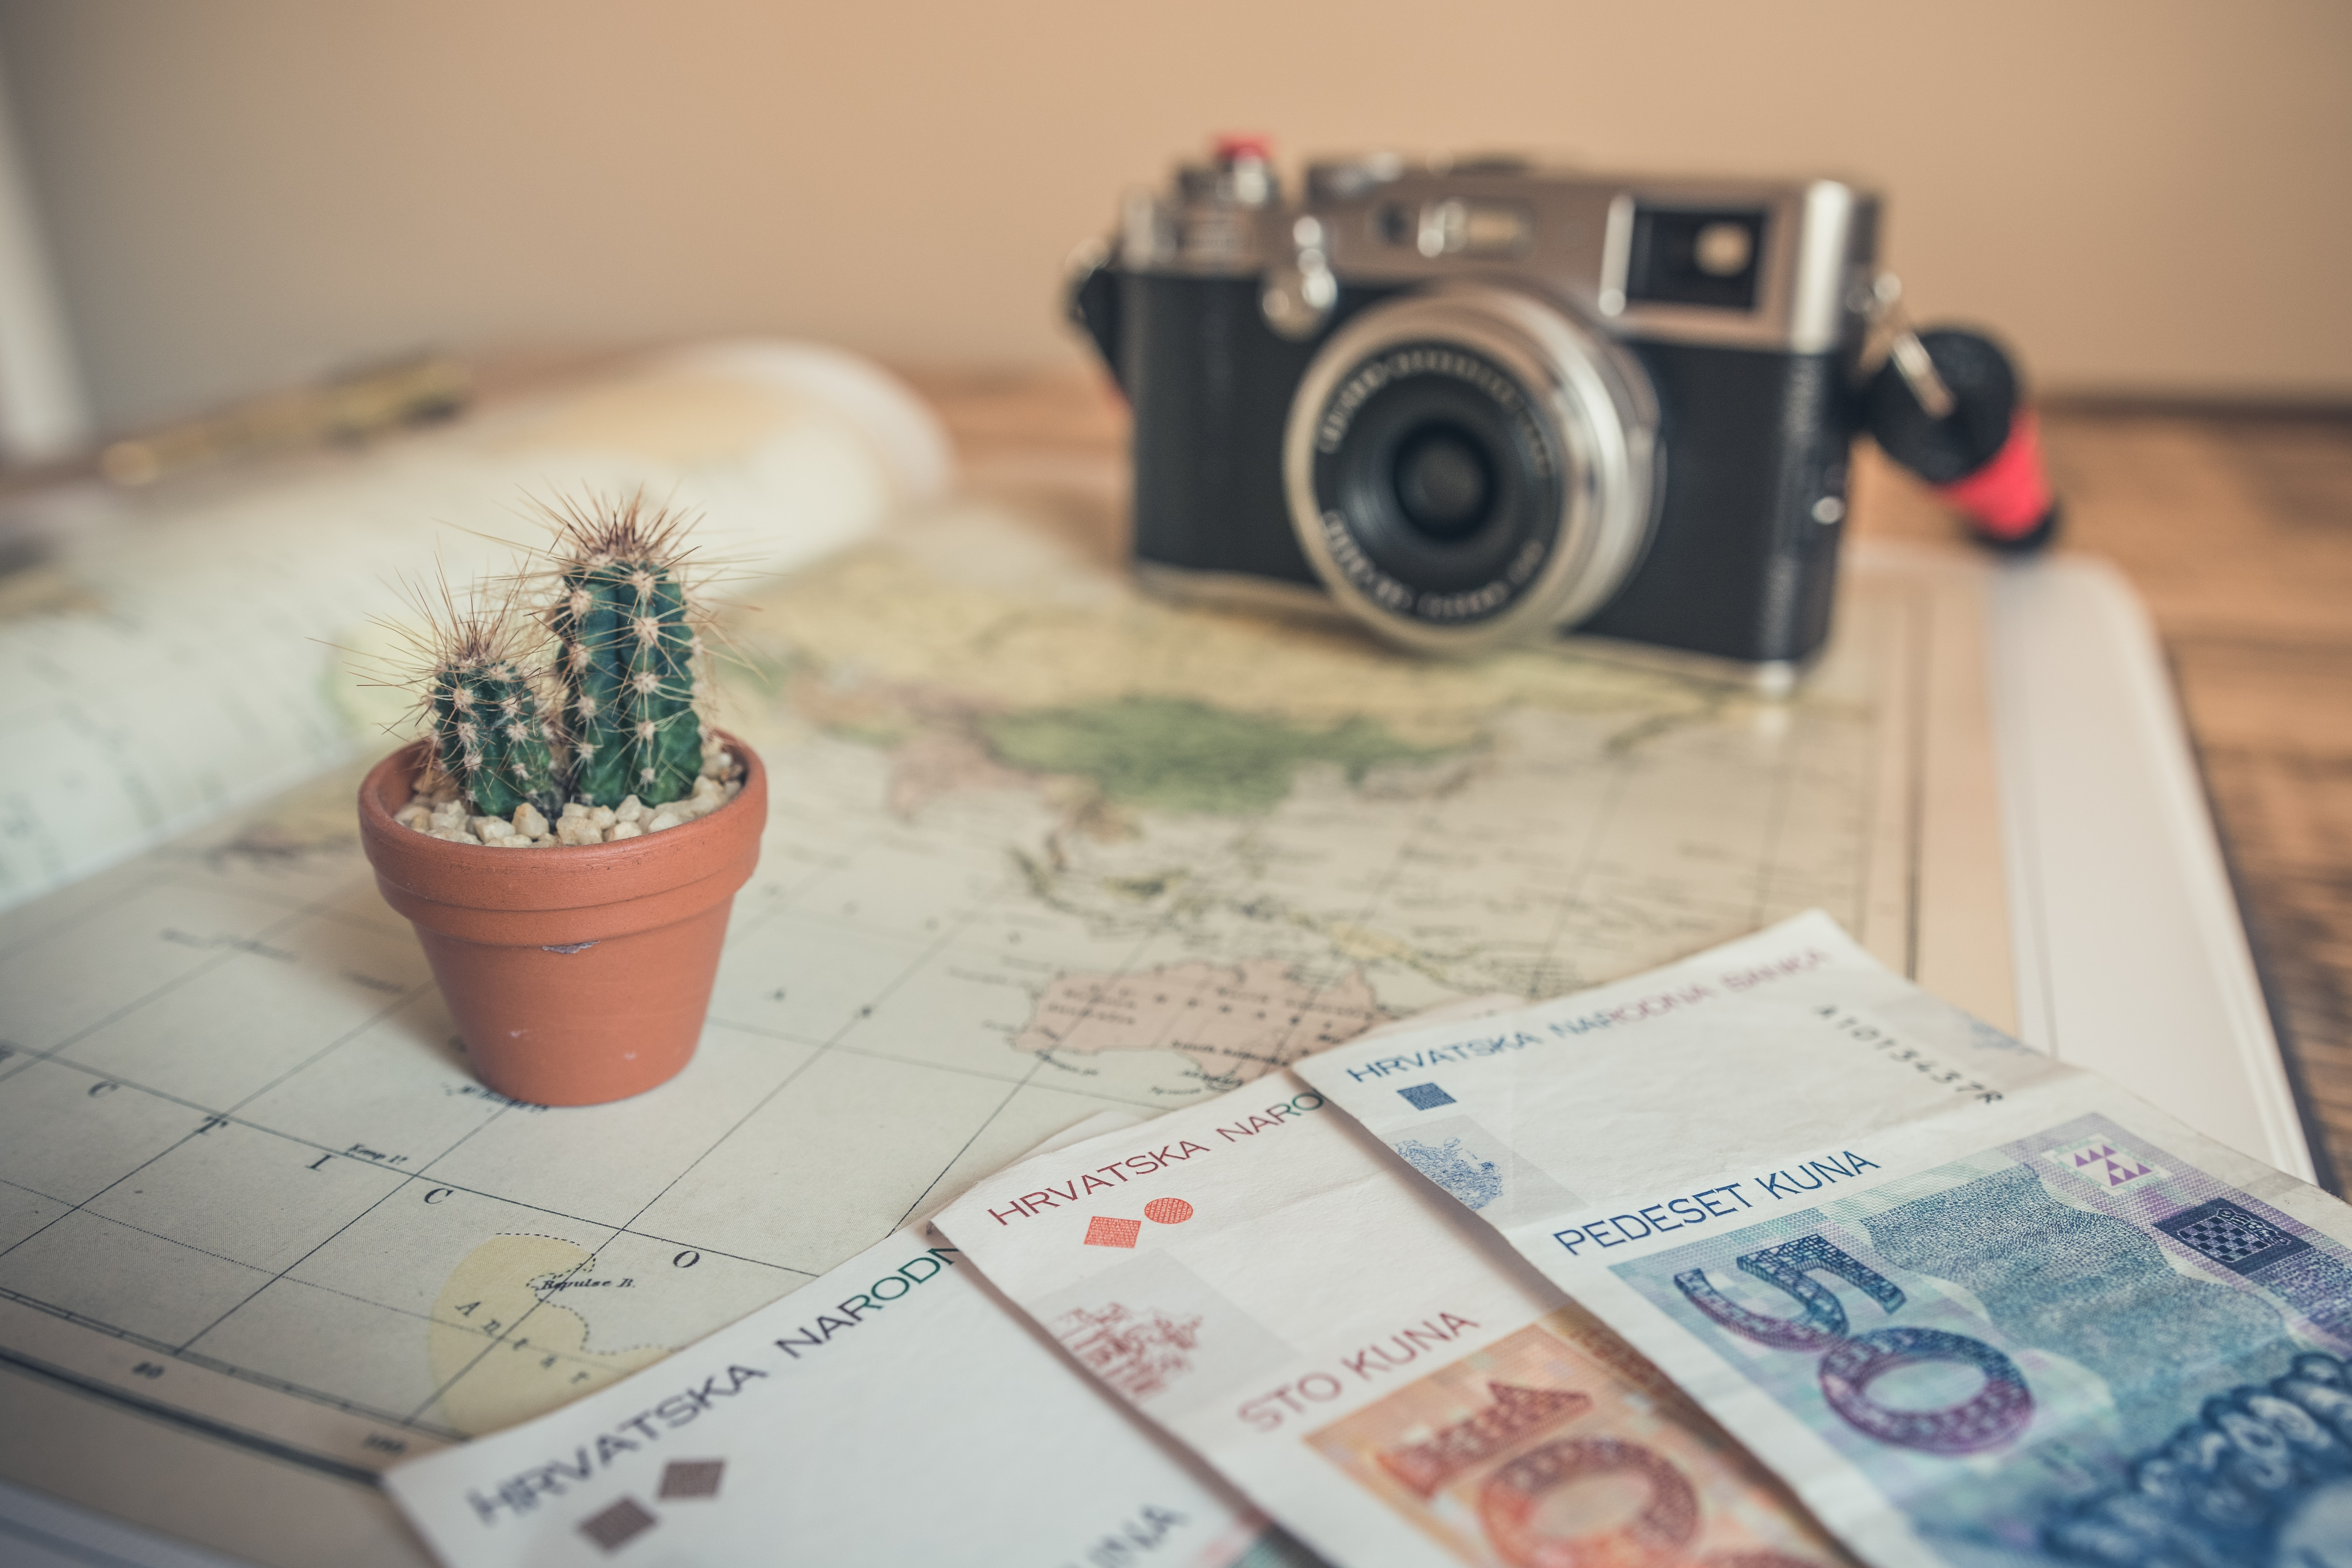 selective focus photography of cactus plant and banknote on table